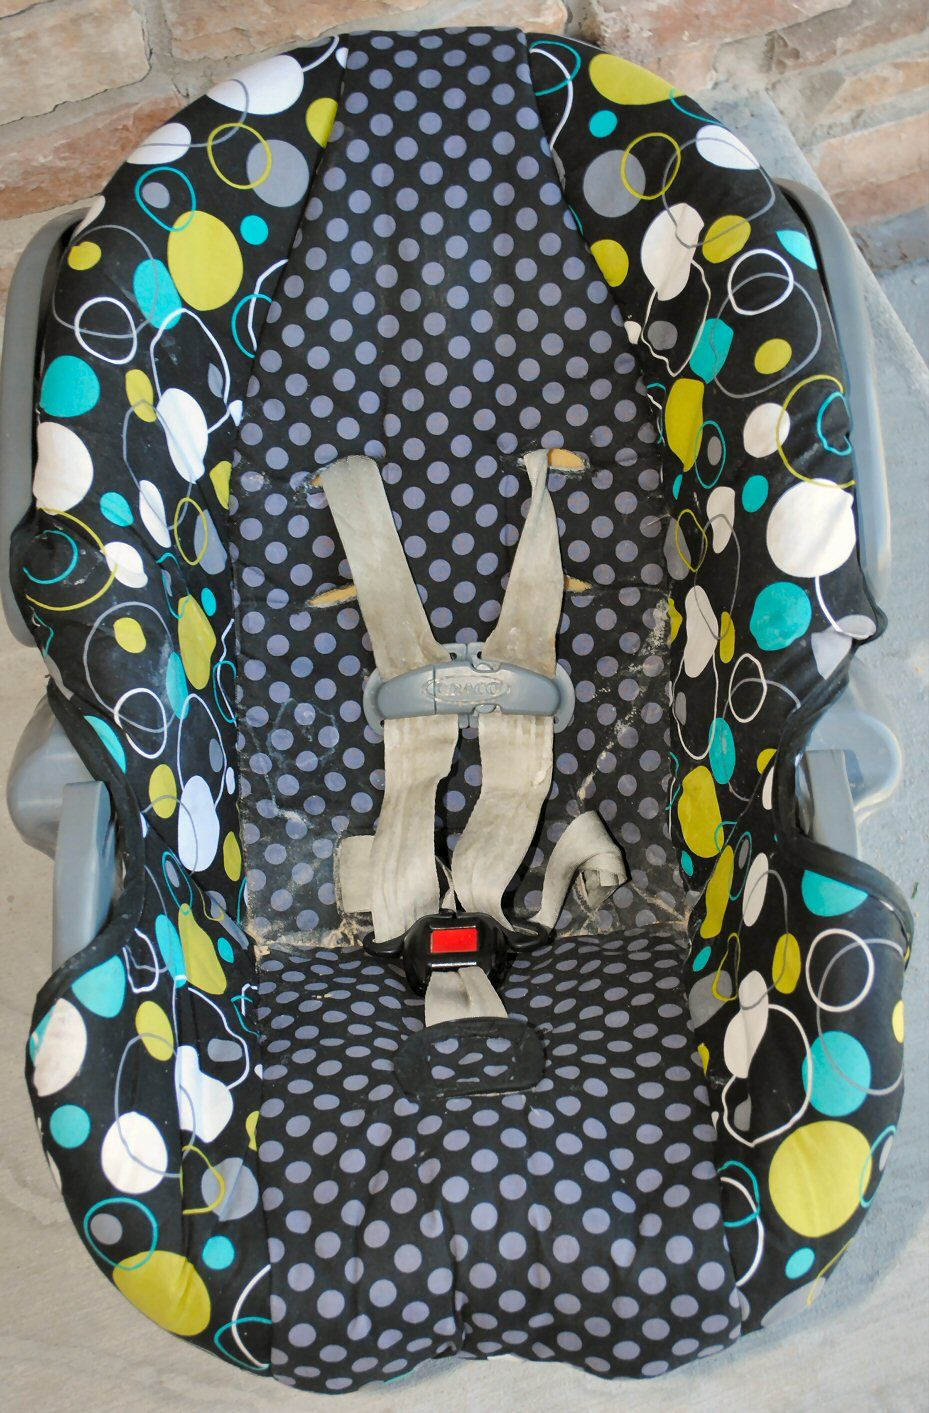 Infant/Toddler Car Seat Cover Tutorial: How to Cover a Baby Car Seat ...